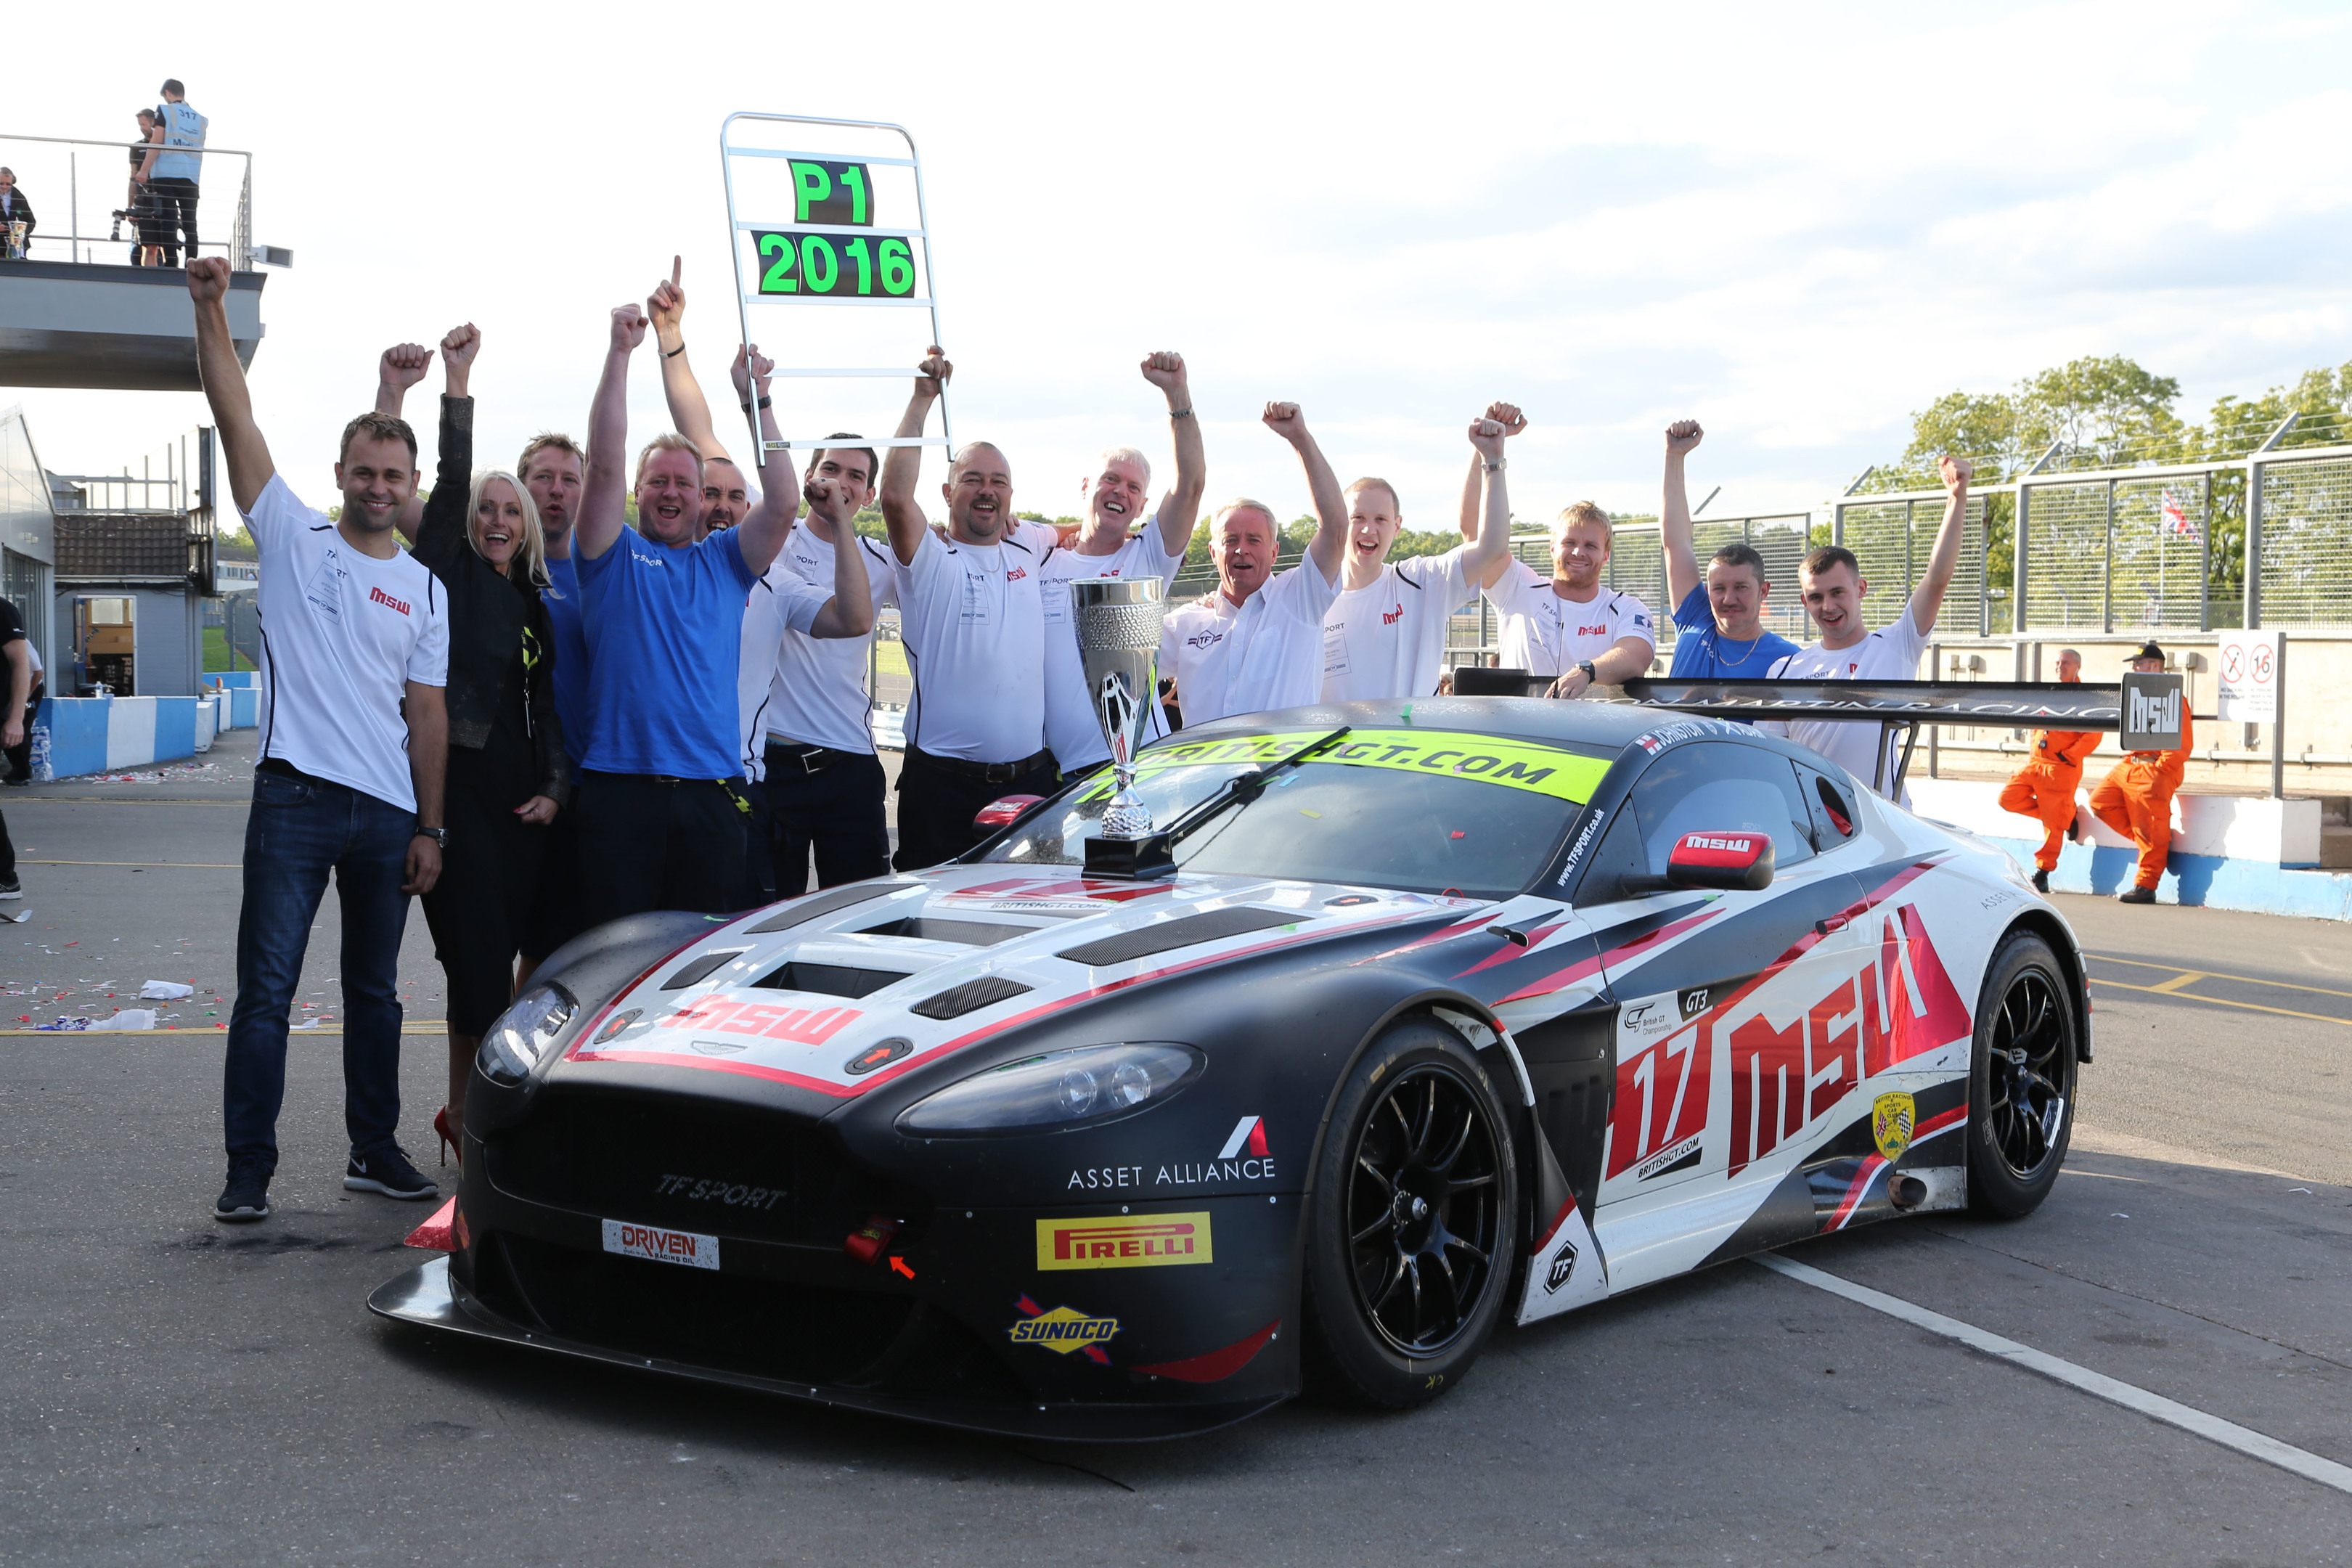 British GT celebrations in 2016